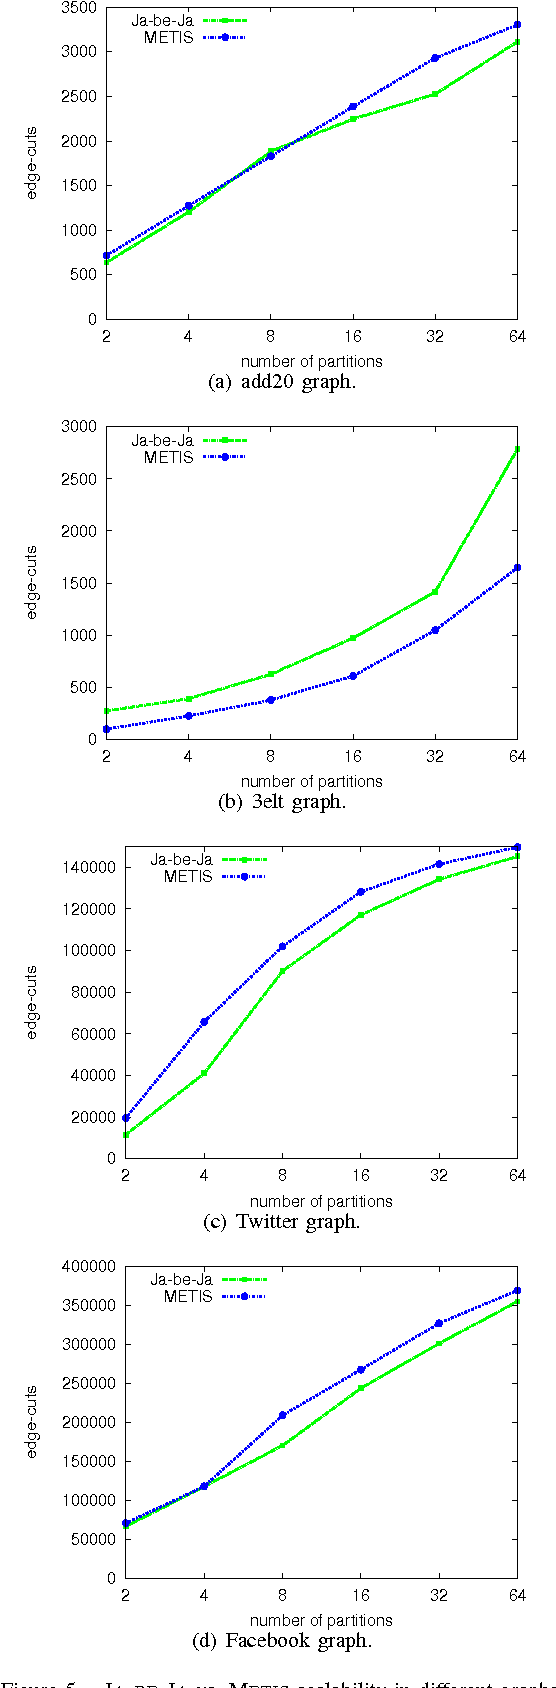 Figure 5. JA-BE-JA vs. METIS scalability in different graphs.